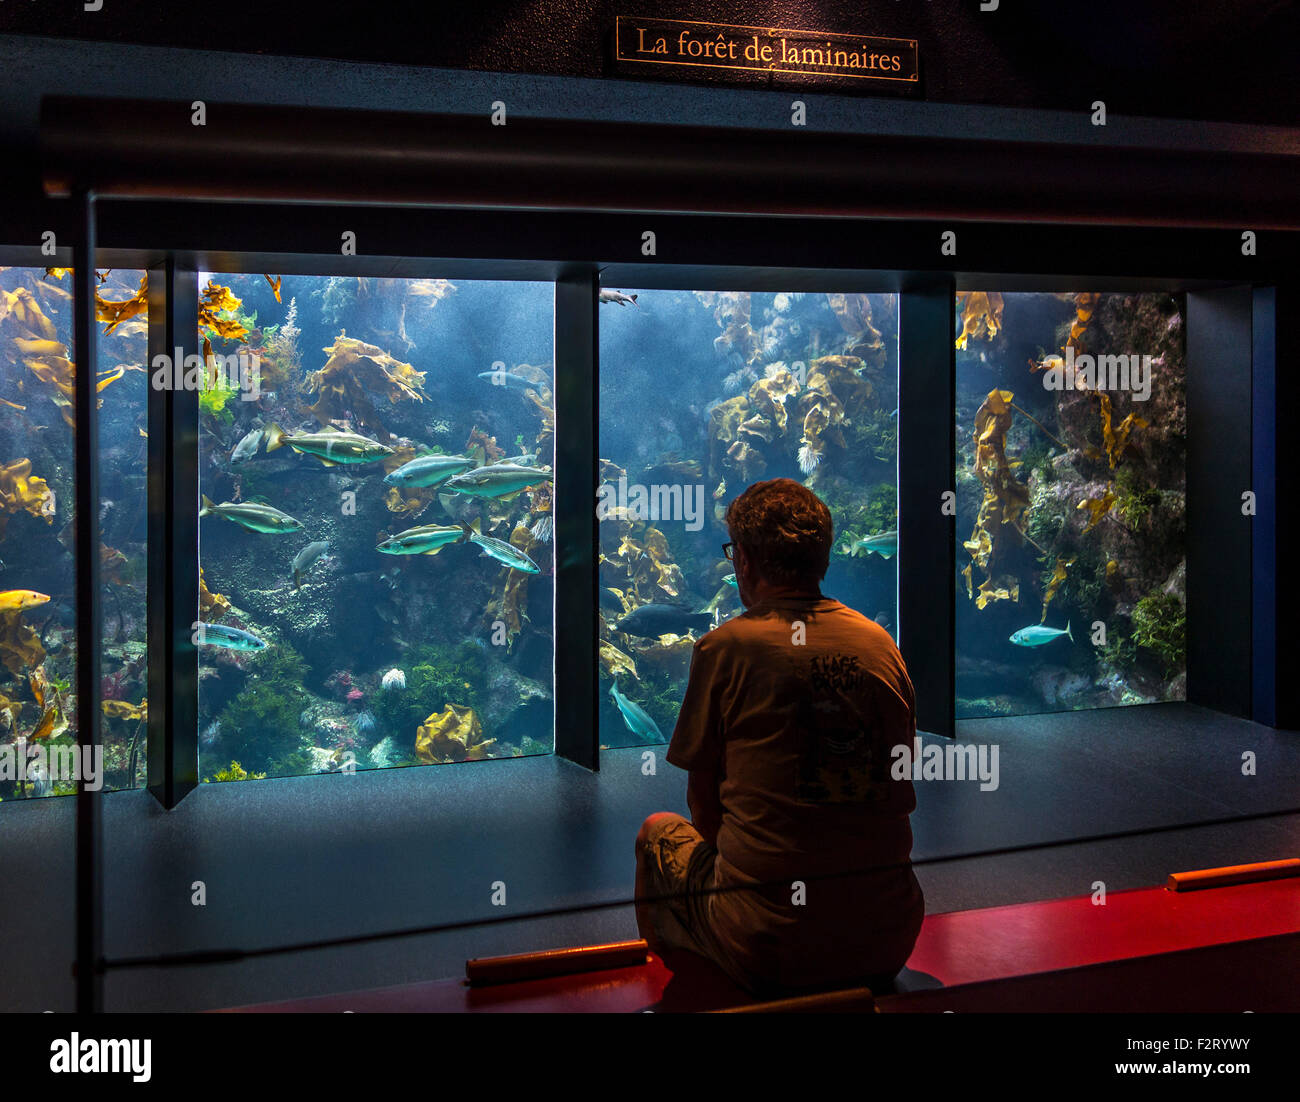 Visitor looking at fishes in huge aquarium at Oceanopolis - ocean discovery park - at Brest, Brittany, France - Stock Image